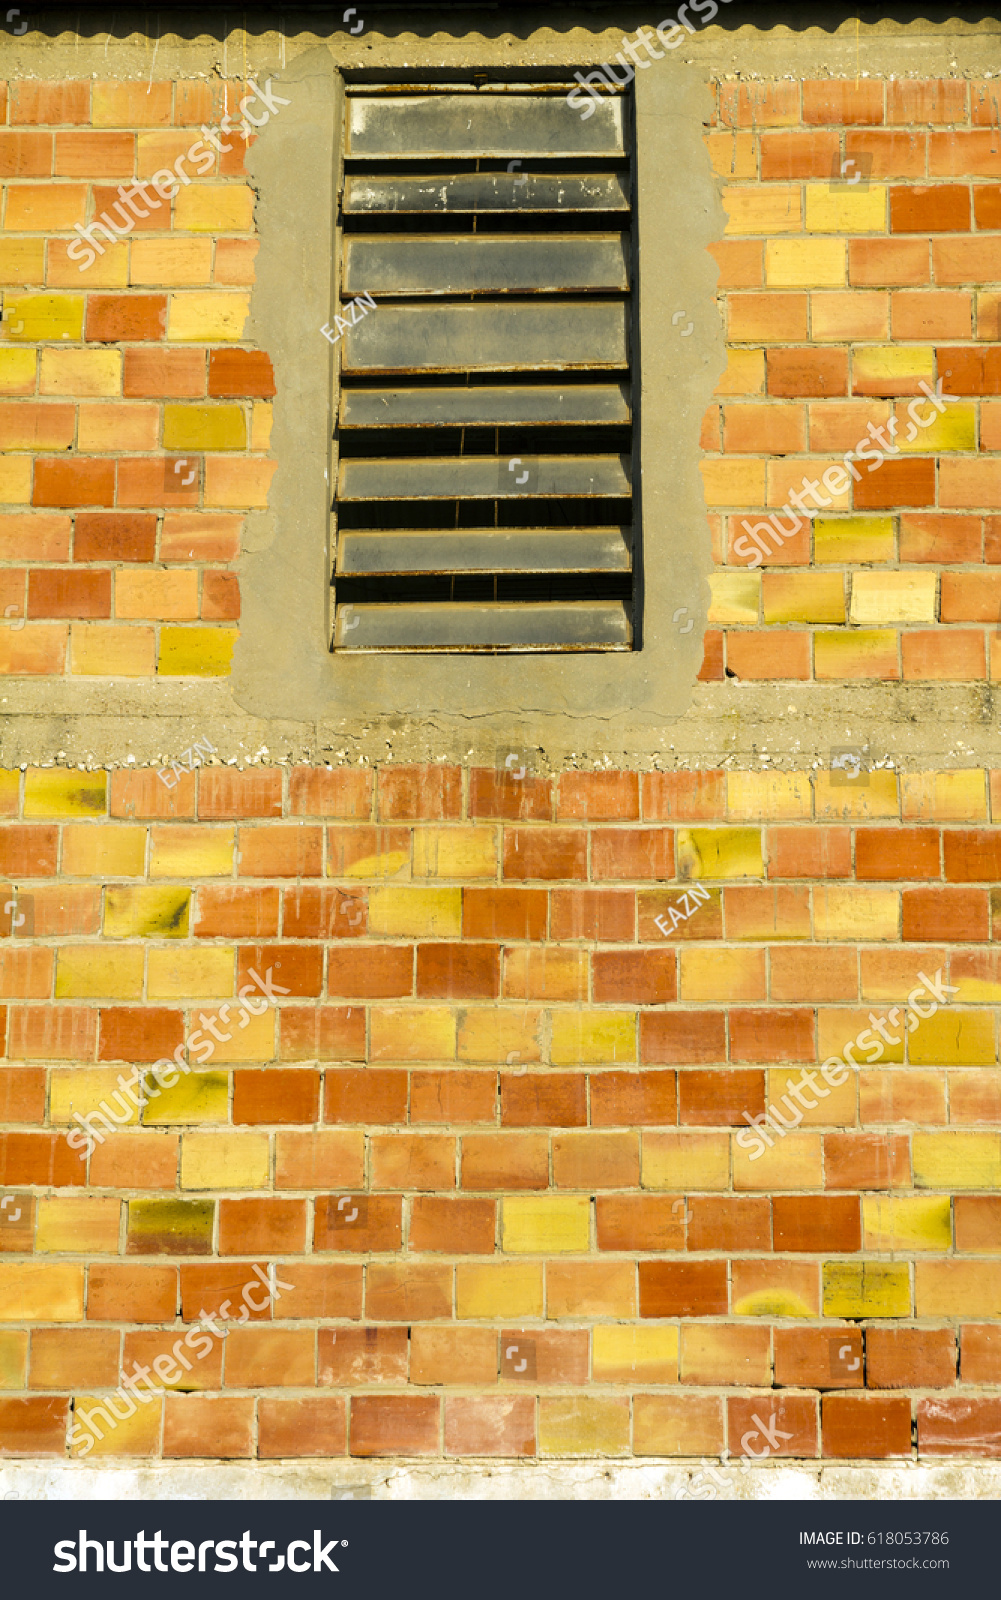 Background Old Yellow Red Brown Vintage Stock Photo 618053786 ...